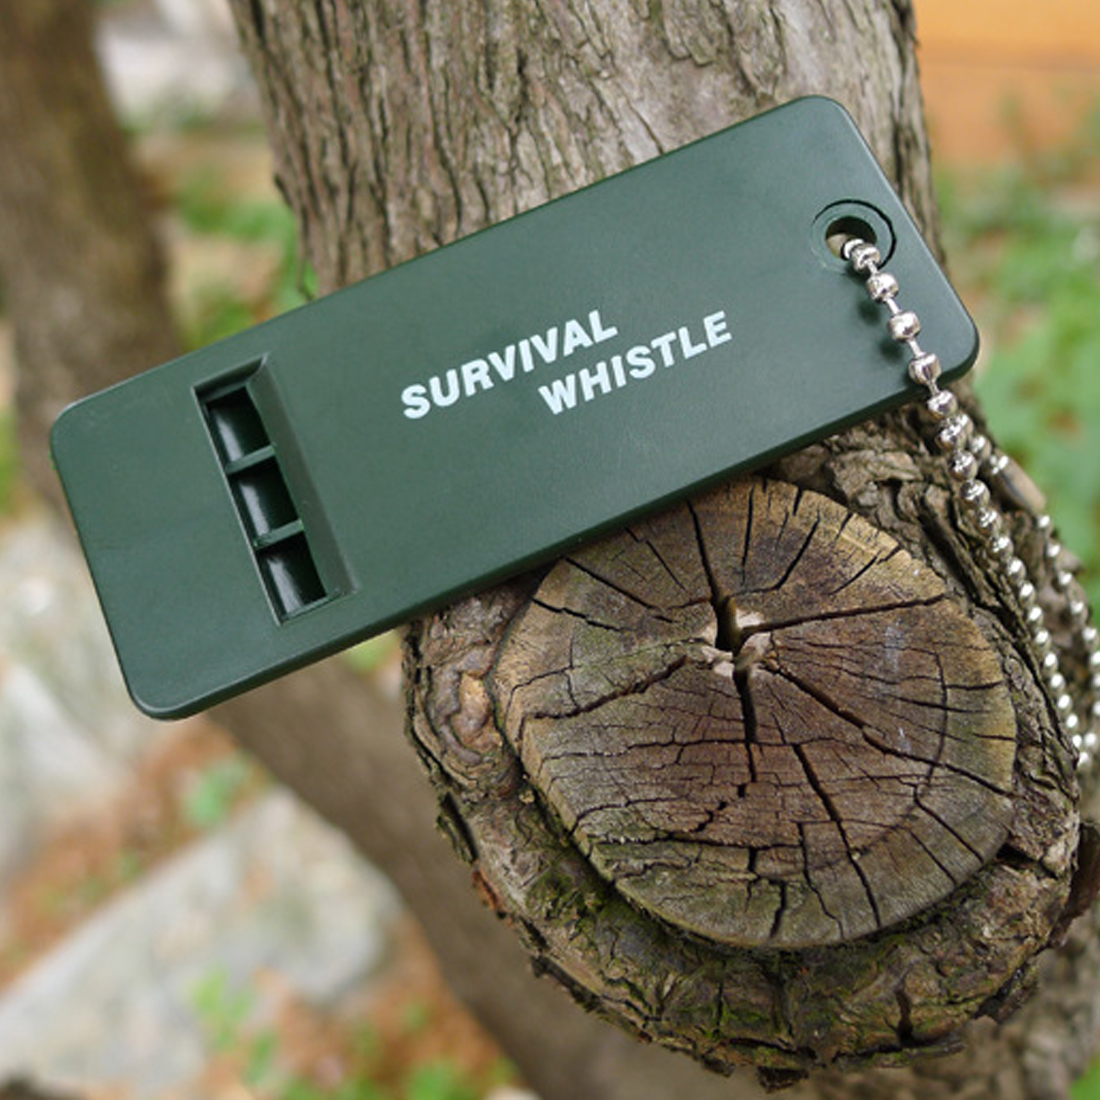 Hot sell Survival Whistle First Aid Kits Outdoor Emergency Signal Rescue Camping Hiking outdoor sport practical